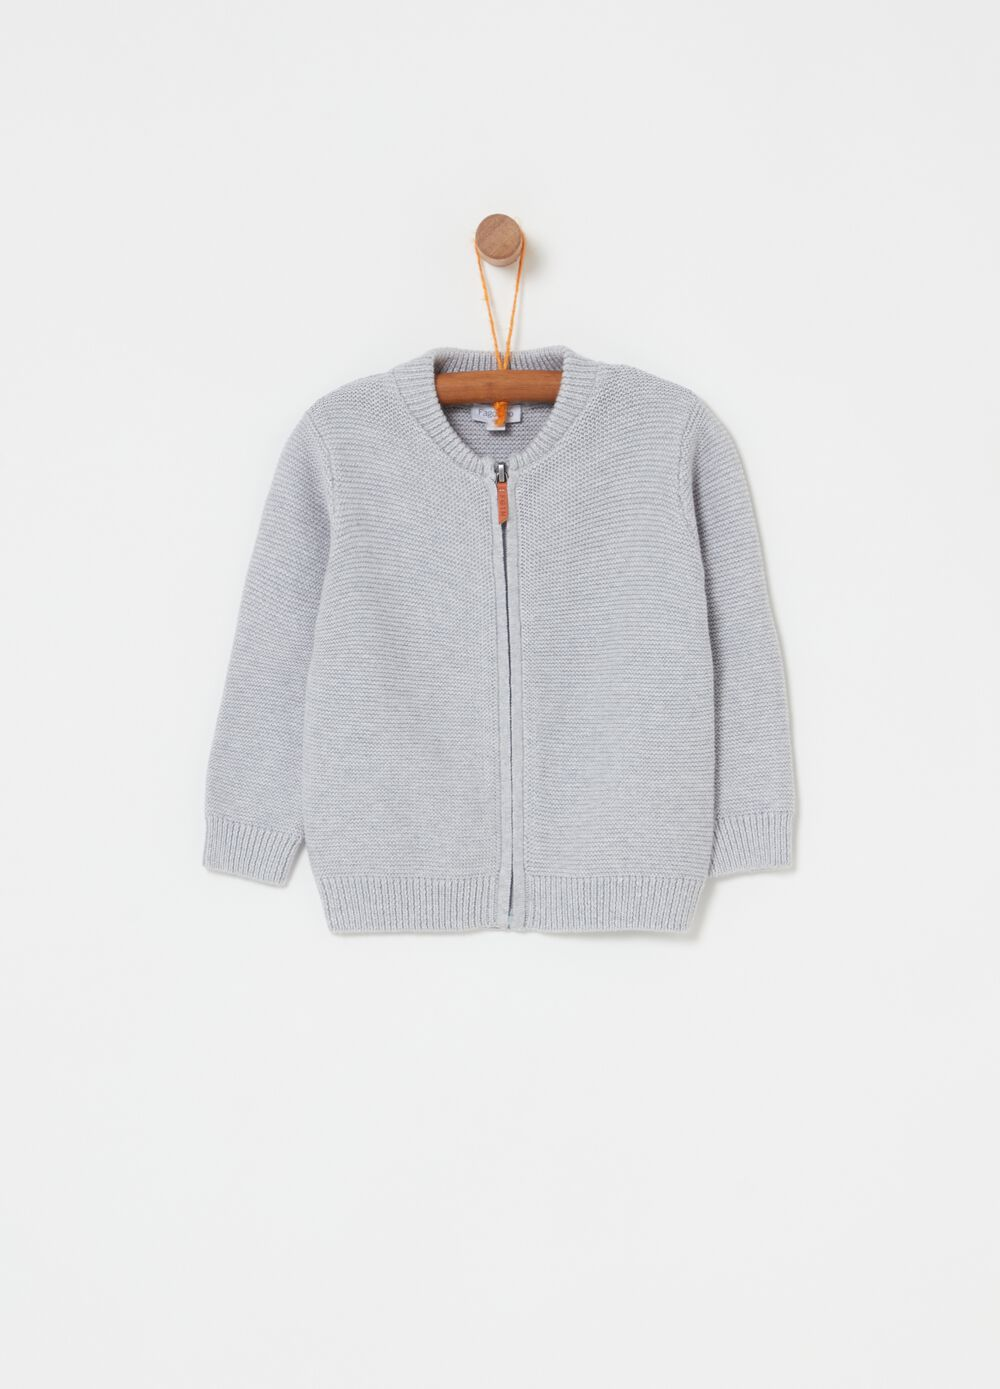 100% cotton knitted cardigan with zip